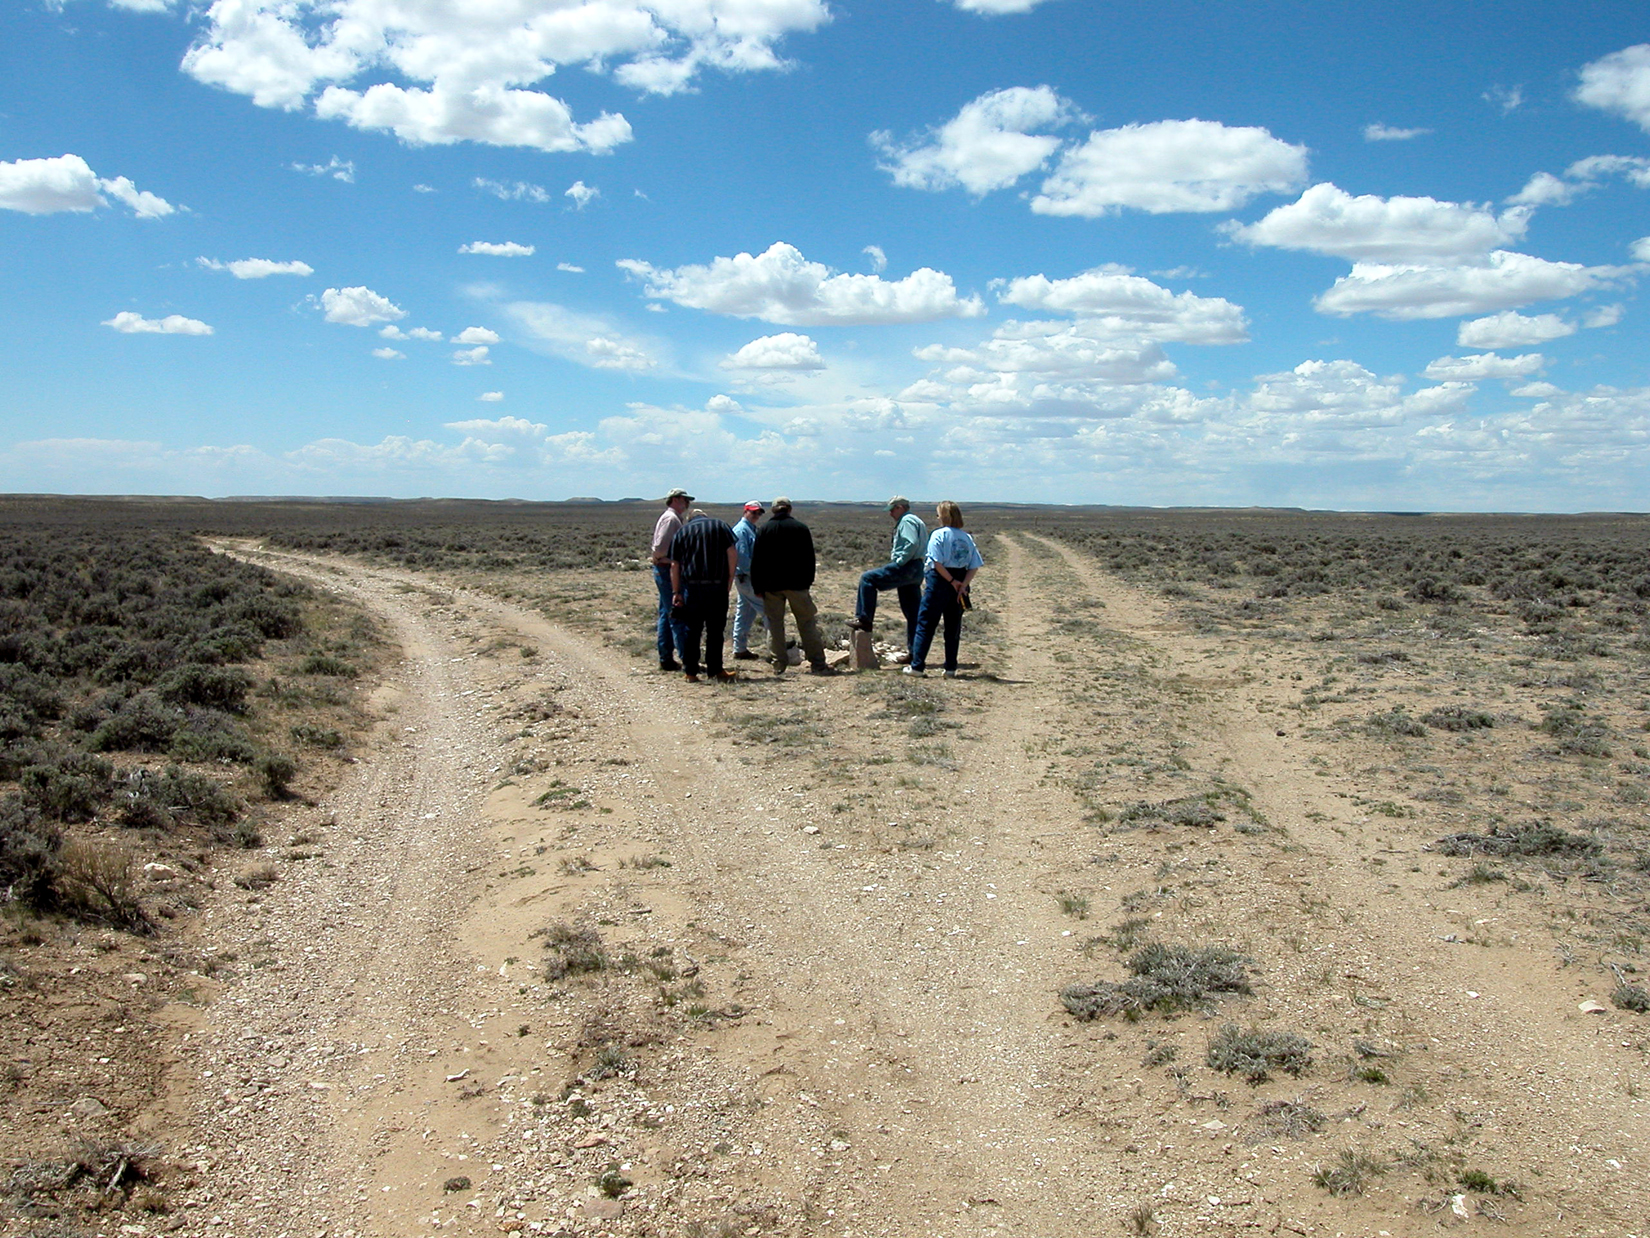 Planning team members visit the Part of the Ways junction where California and Oregon trail emigrants separated.